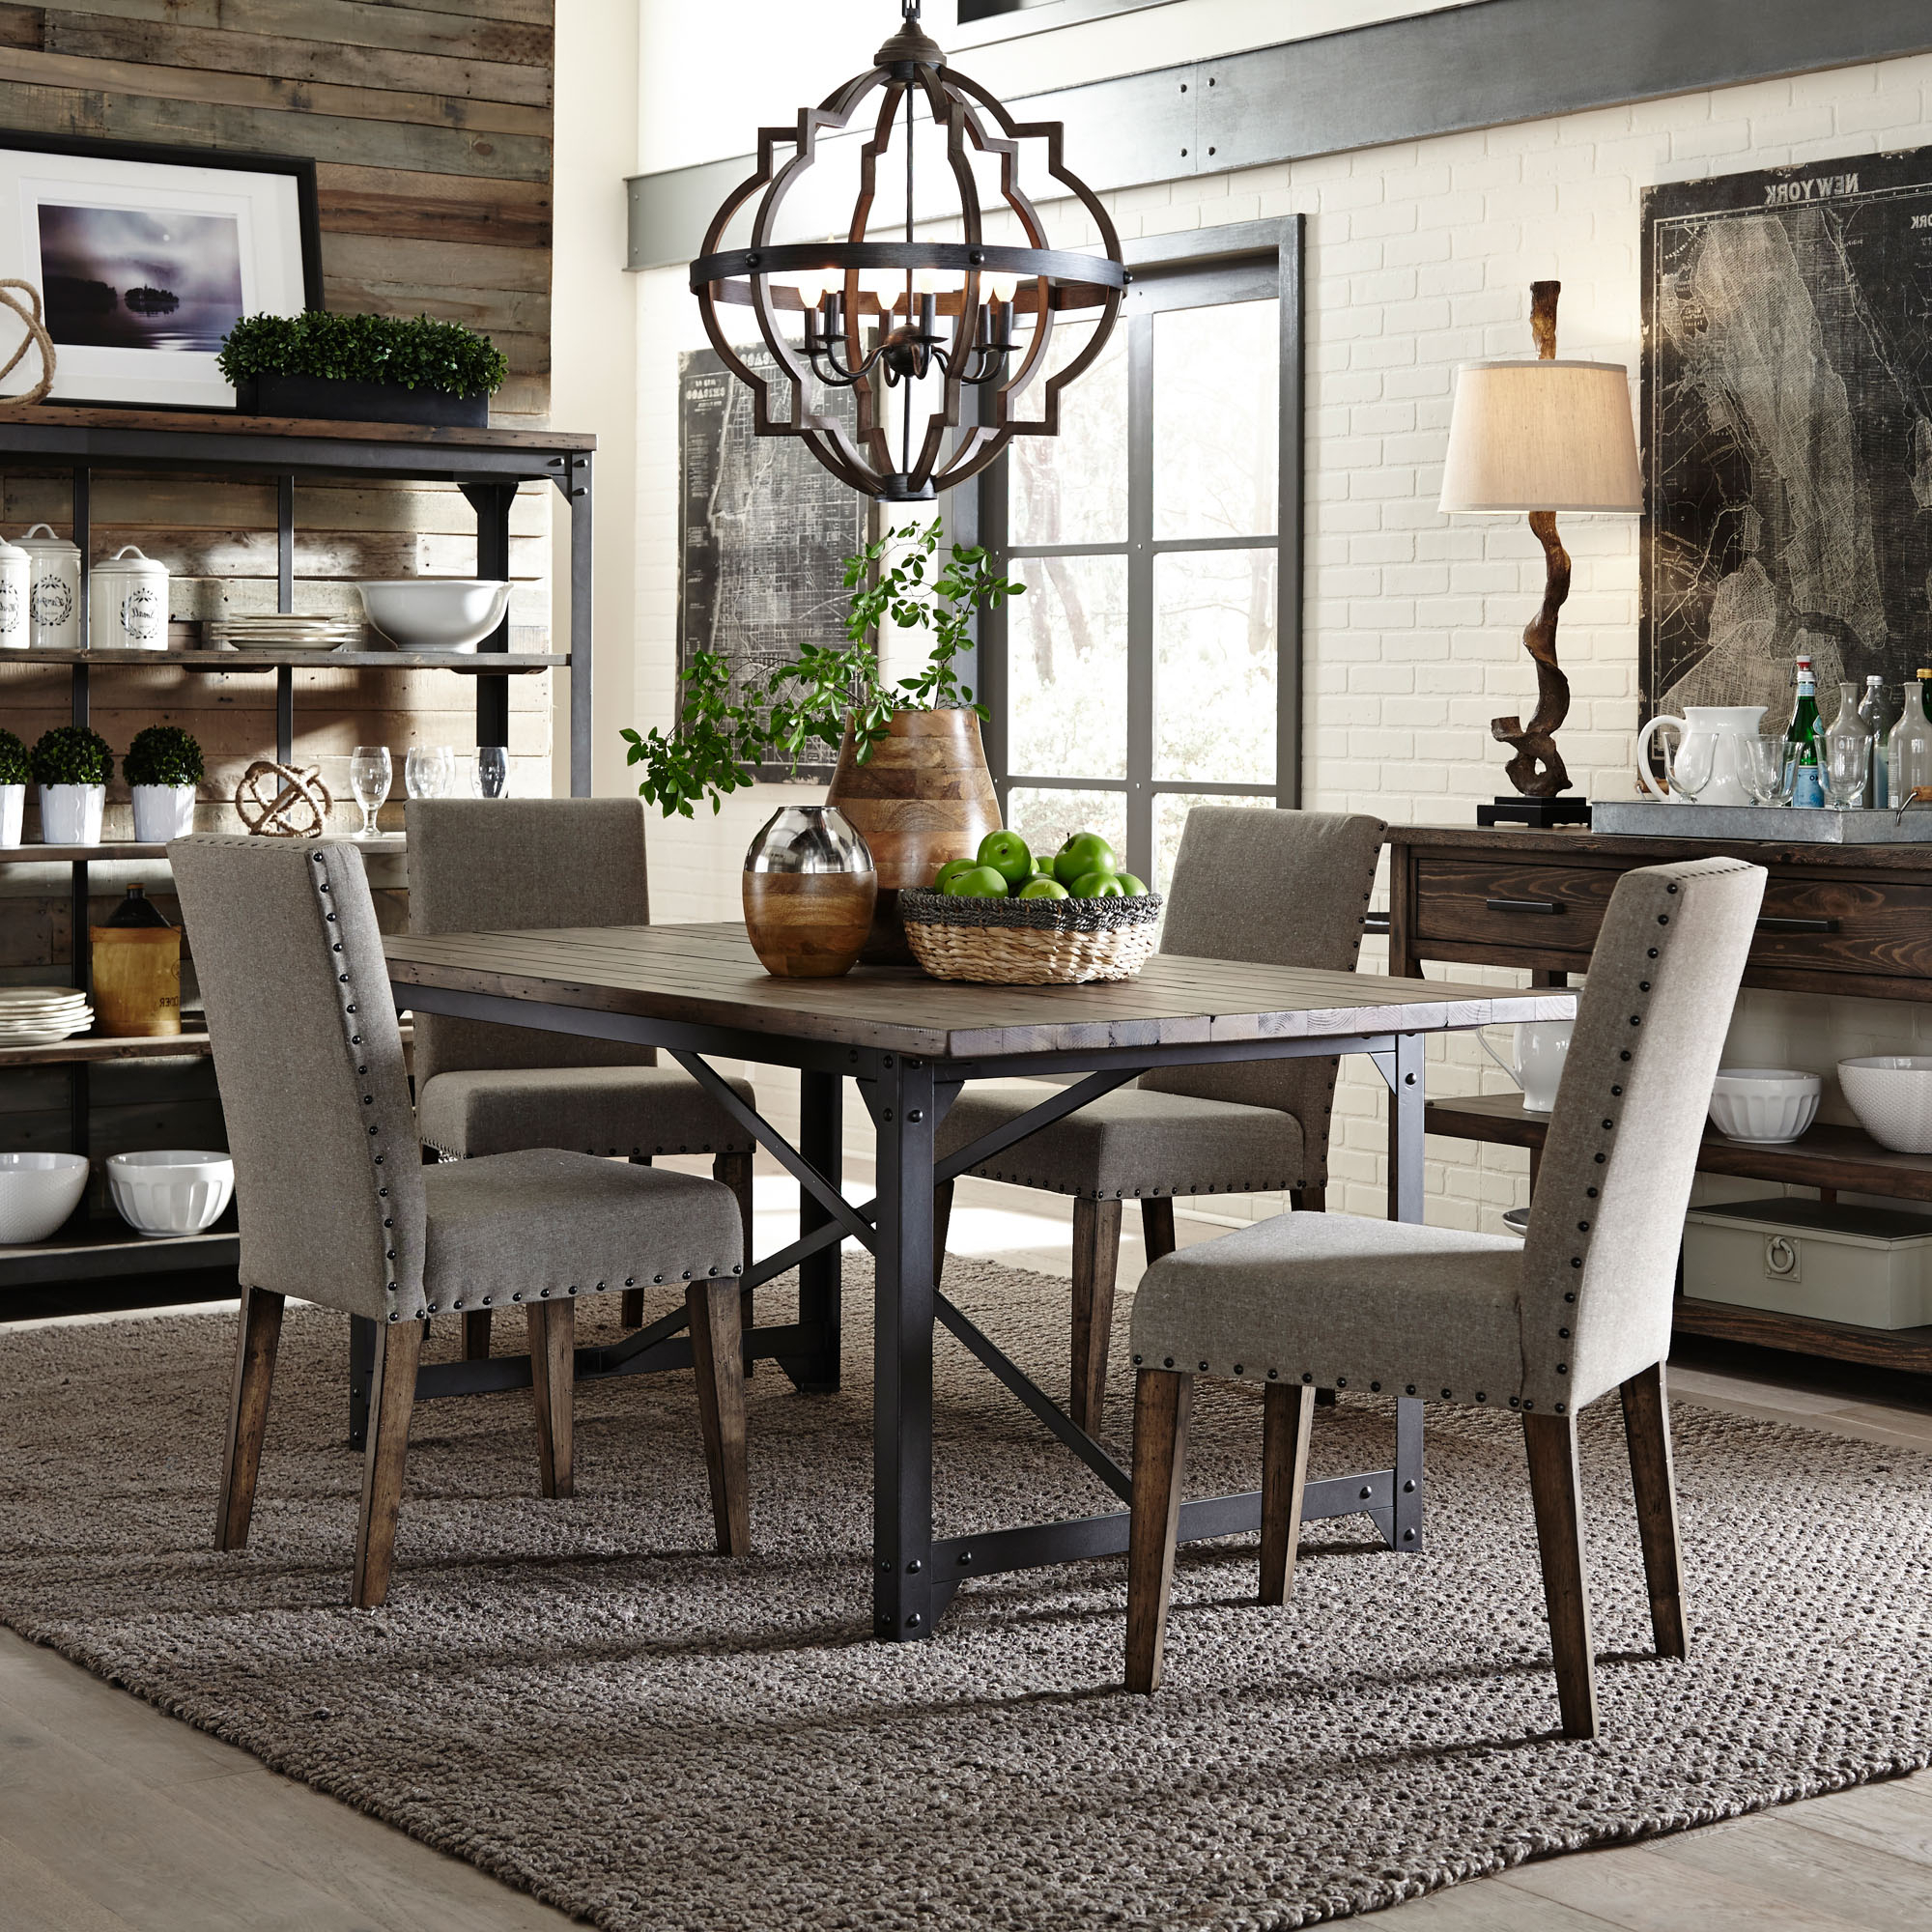 Best And Newest Dining Room Sets, Dining Room Furniture (View 4 of 25)